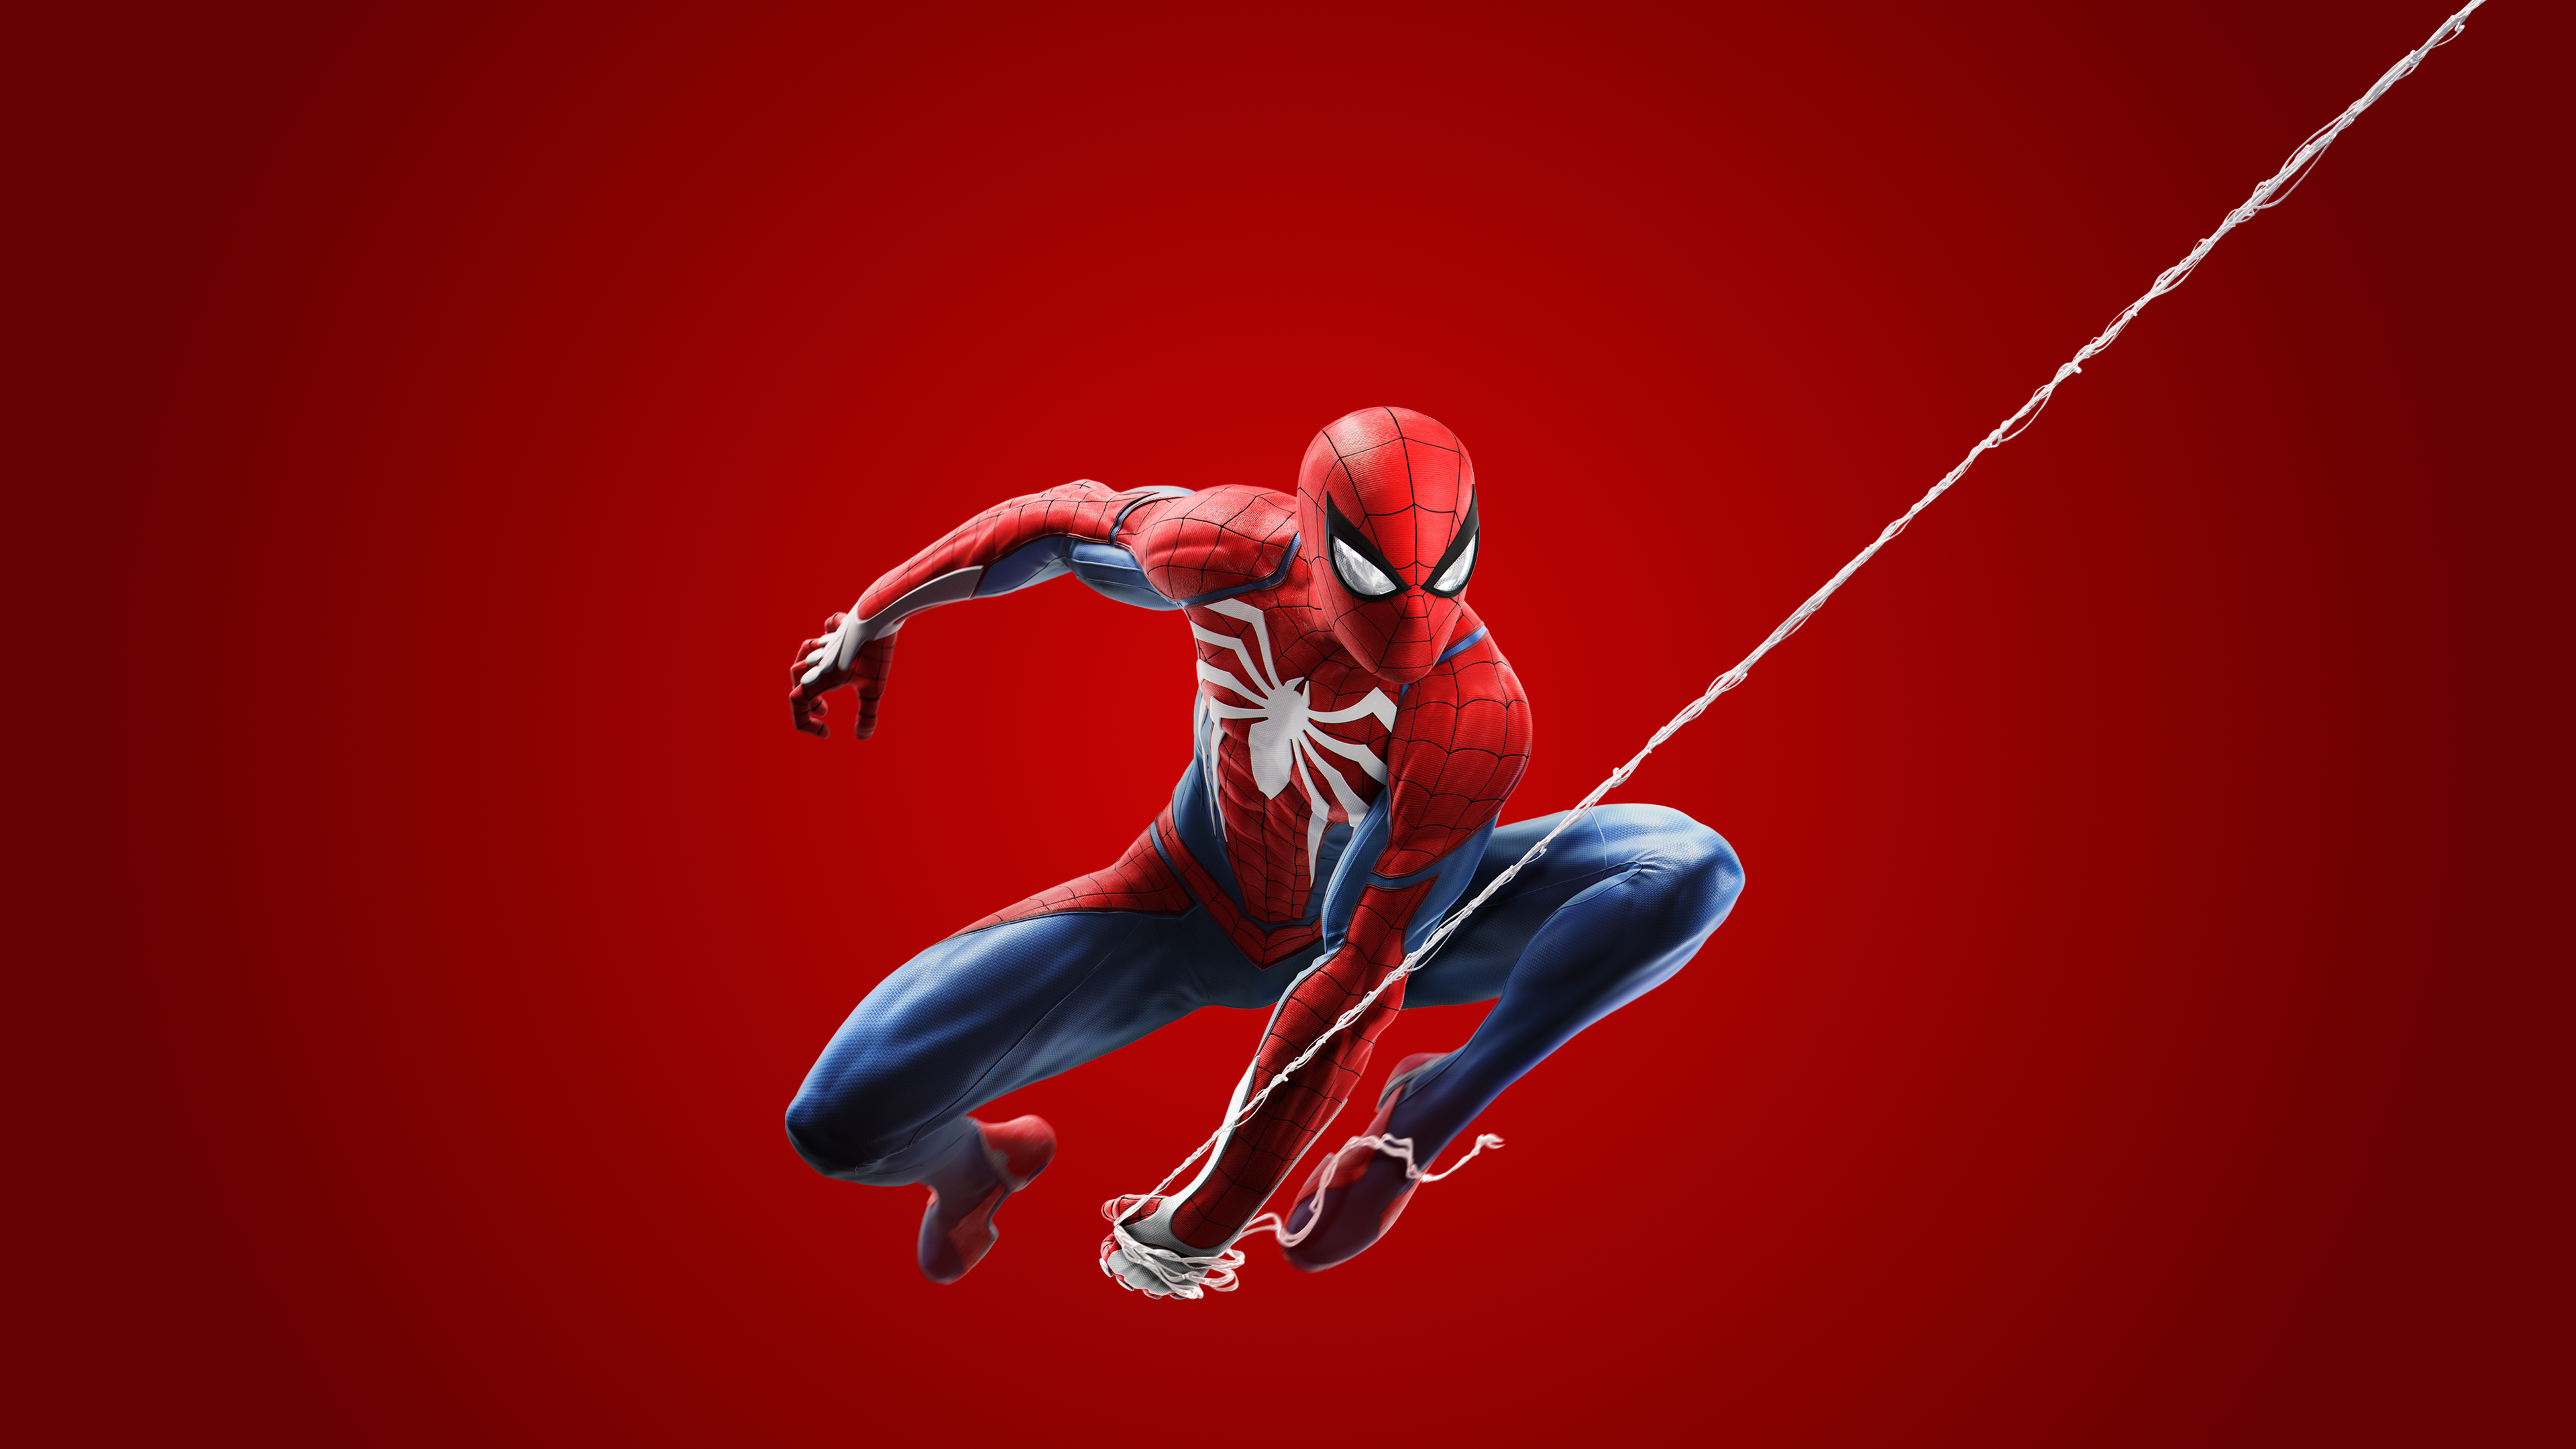 4k wallpaper of spider-man (alternate version in comments